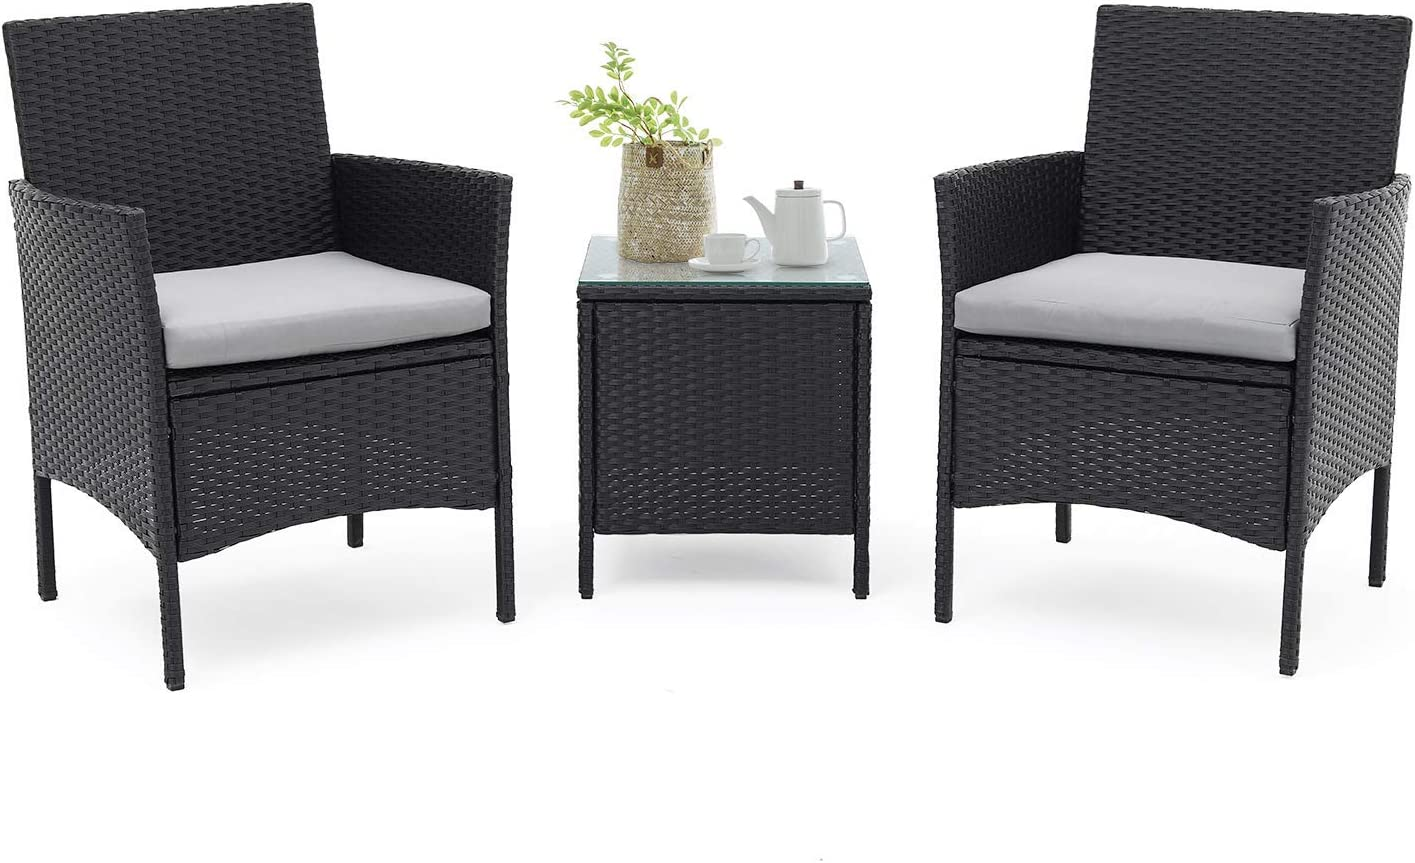 Suncrown 3 Piece Patio Bistro Set Outdoor Black Wicker Chairs Patio Furniture Set With Glass Table Grey Cushion Garden Outdoor